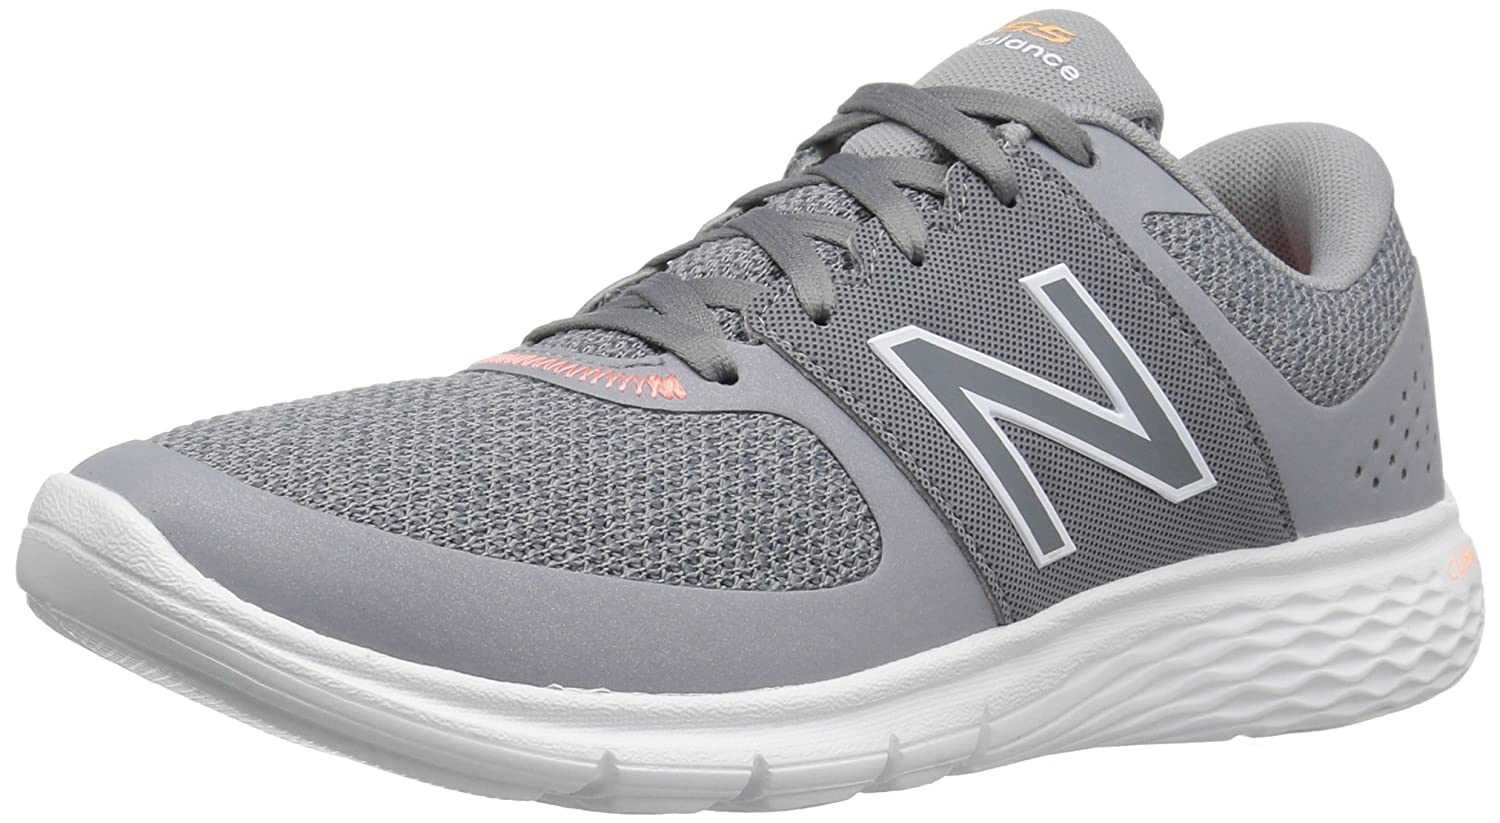 New Balance Women's WA365v1 CUSH + Walking Shoe B01FSIM3KI 7.5 D US|Grey/White